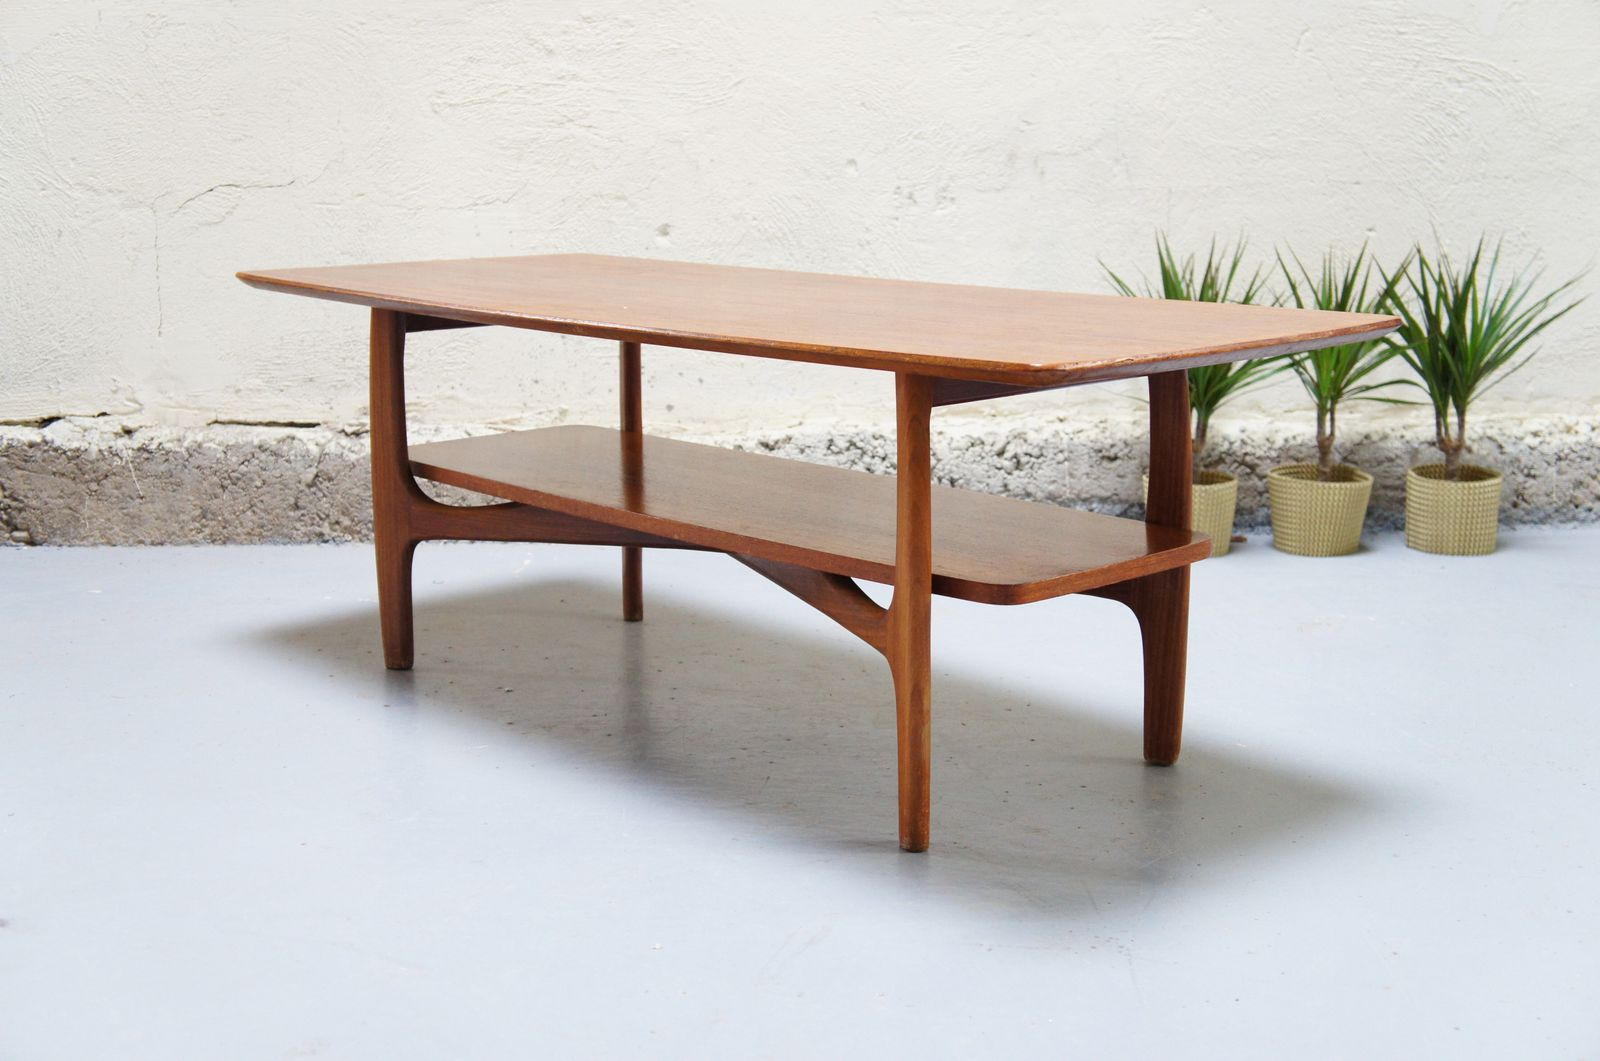 Vendu table basse scandinave vintage design danois teck - Table basse scandinave annee 50 ...